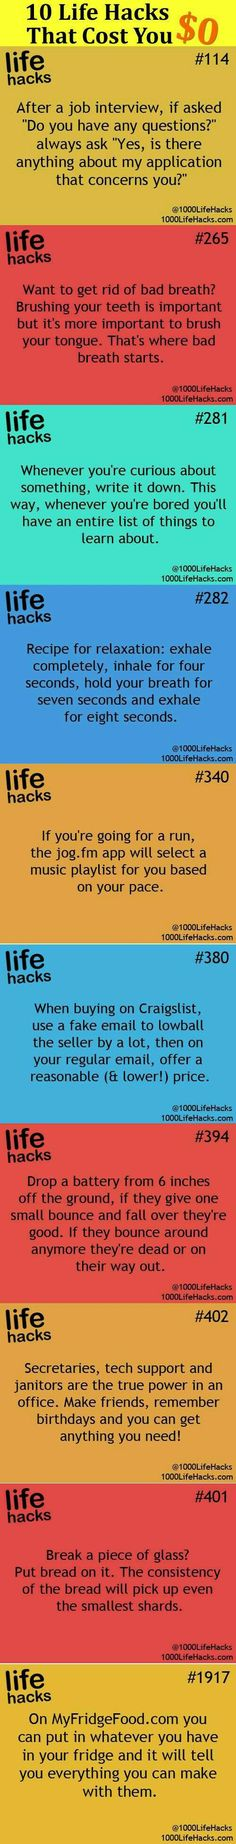 Awesome life hacks for any day of the week.